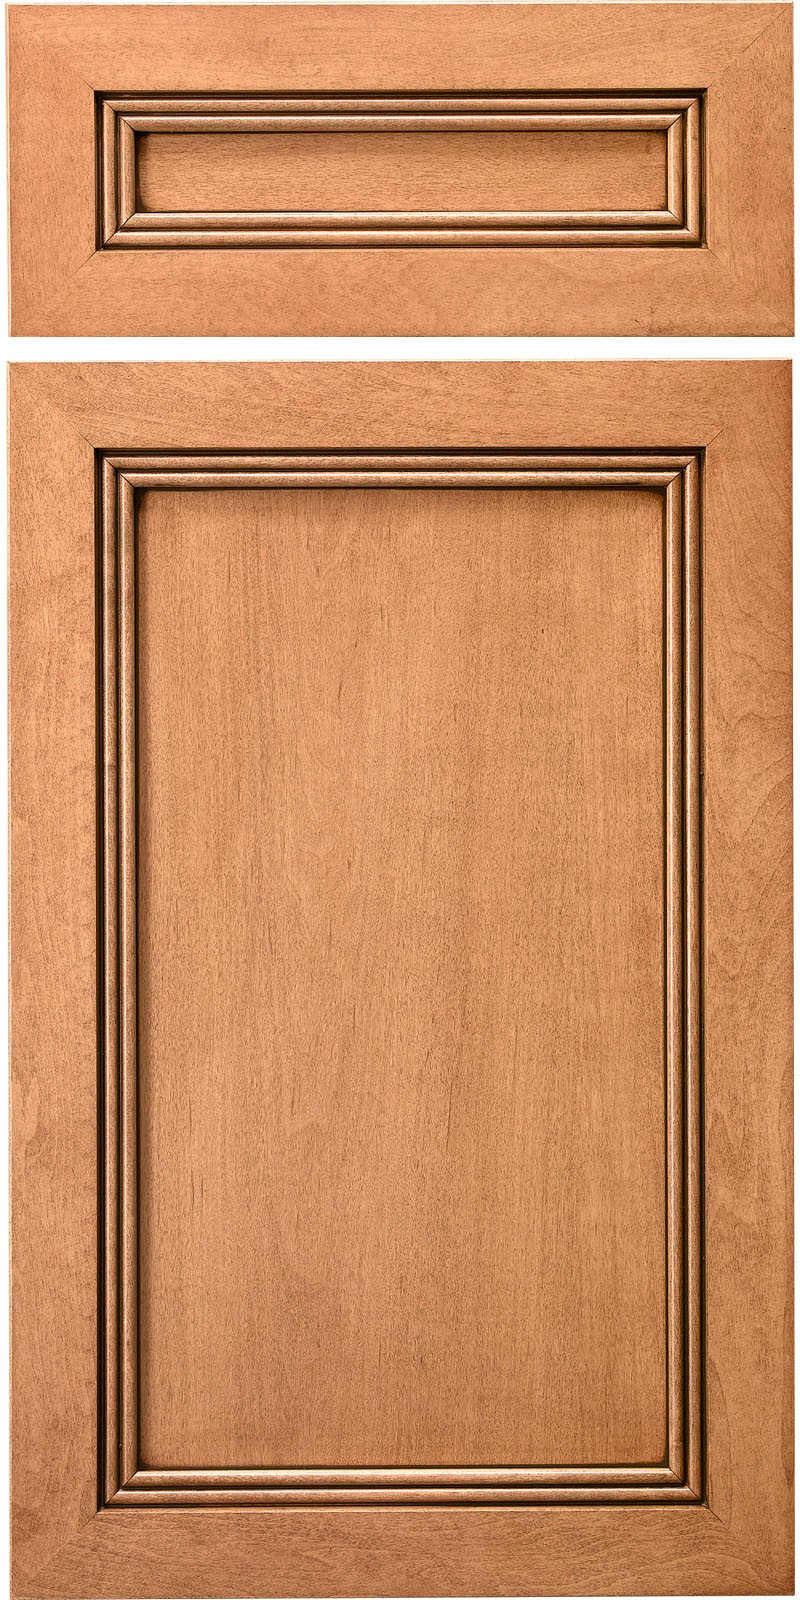 Tw10533 Plywood Panel Materials Cabinet Doors Drawer Fronts Products